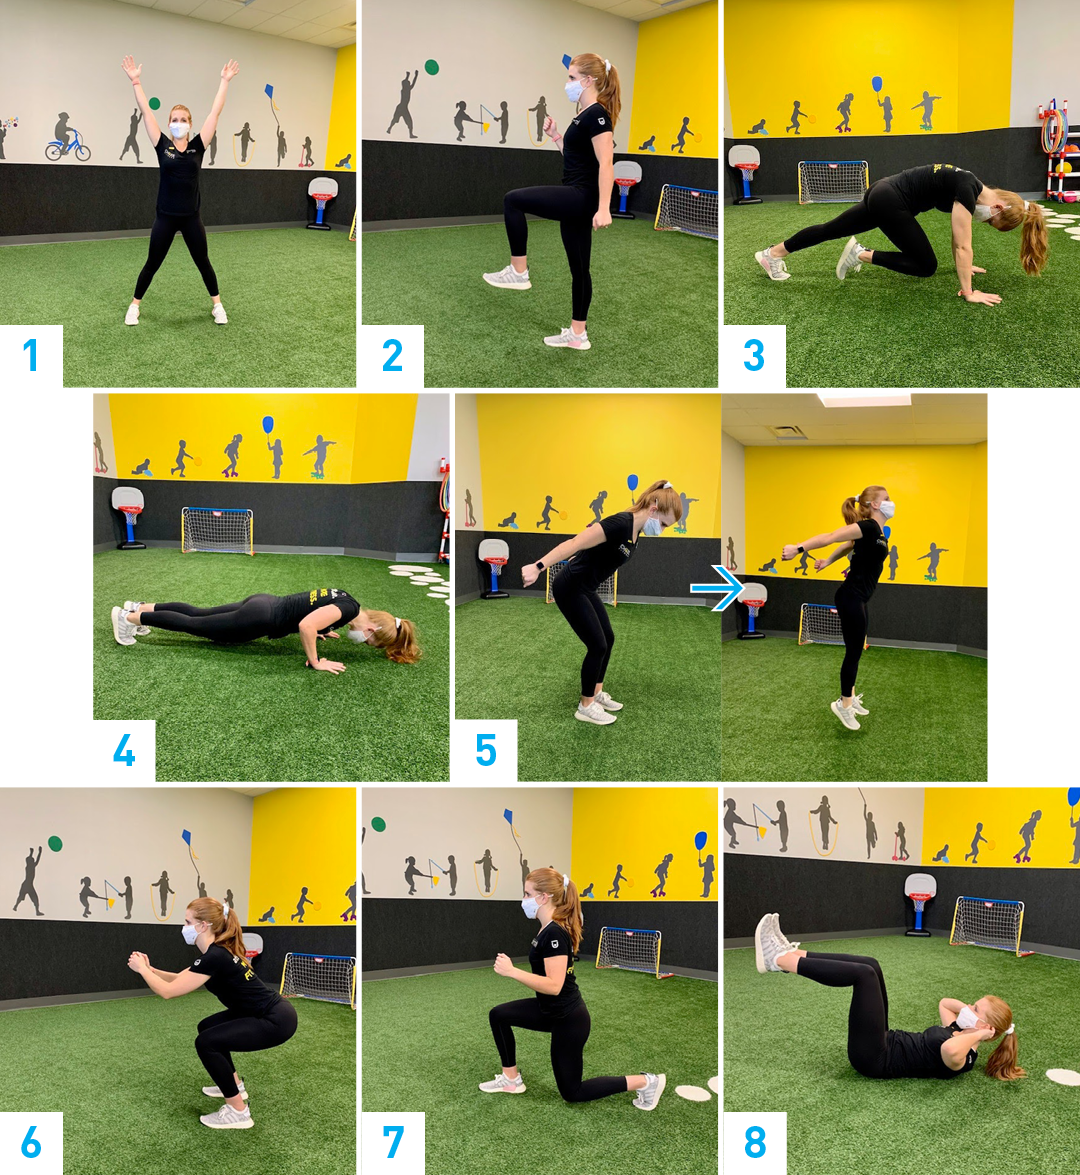 A collage of images showing examples of each numbered workout move